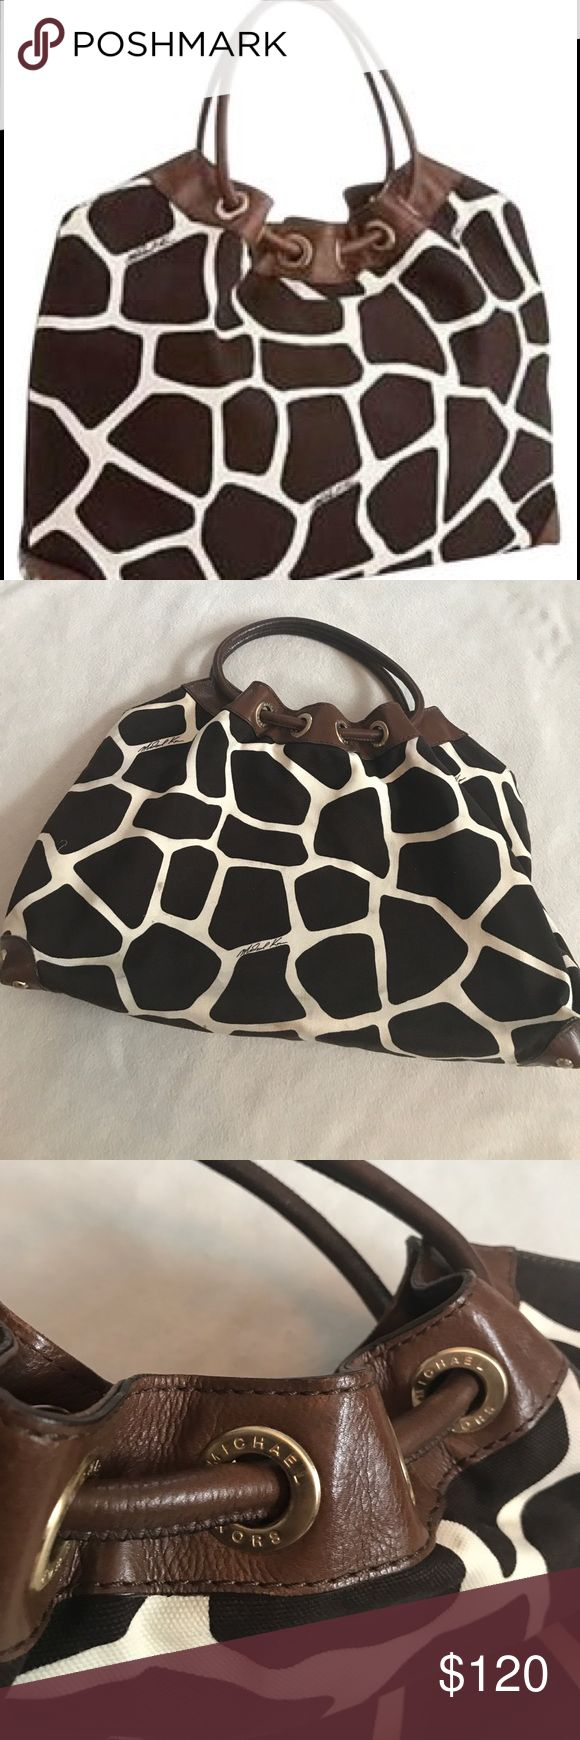 """Michael Kors Giraffe Joplin Hobo Tote Bag 17"""" length with handles 12"""" height without handles. 19"""" width. Has leather top with Roberts. Leather handle. Giraffe print. Hobo bag. Joplin hobo bag. Has small marks on outside and a small stain inside otherwise excellent condition. Has inner zippered pocket and slit storage. Bundle 2+ items for a discount MICHAEL Michael Kors Bags Hobos"""